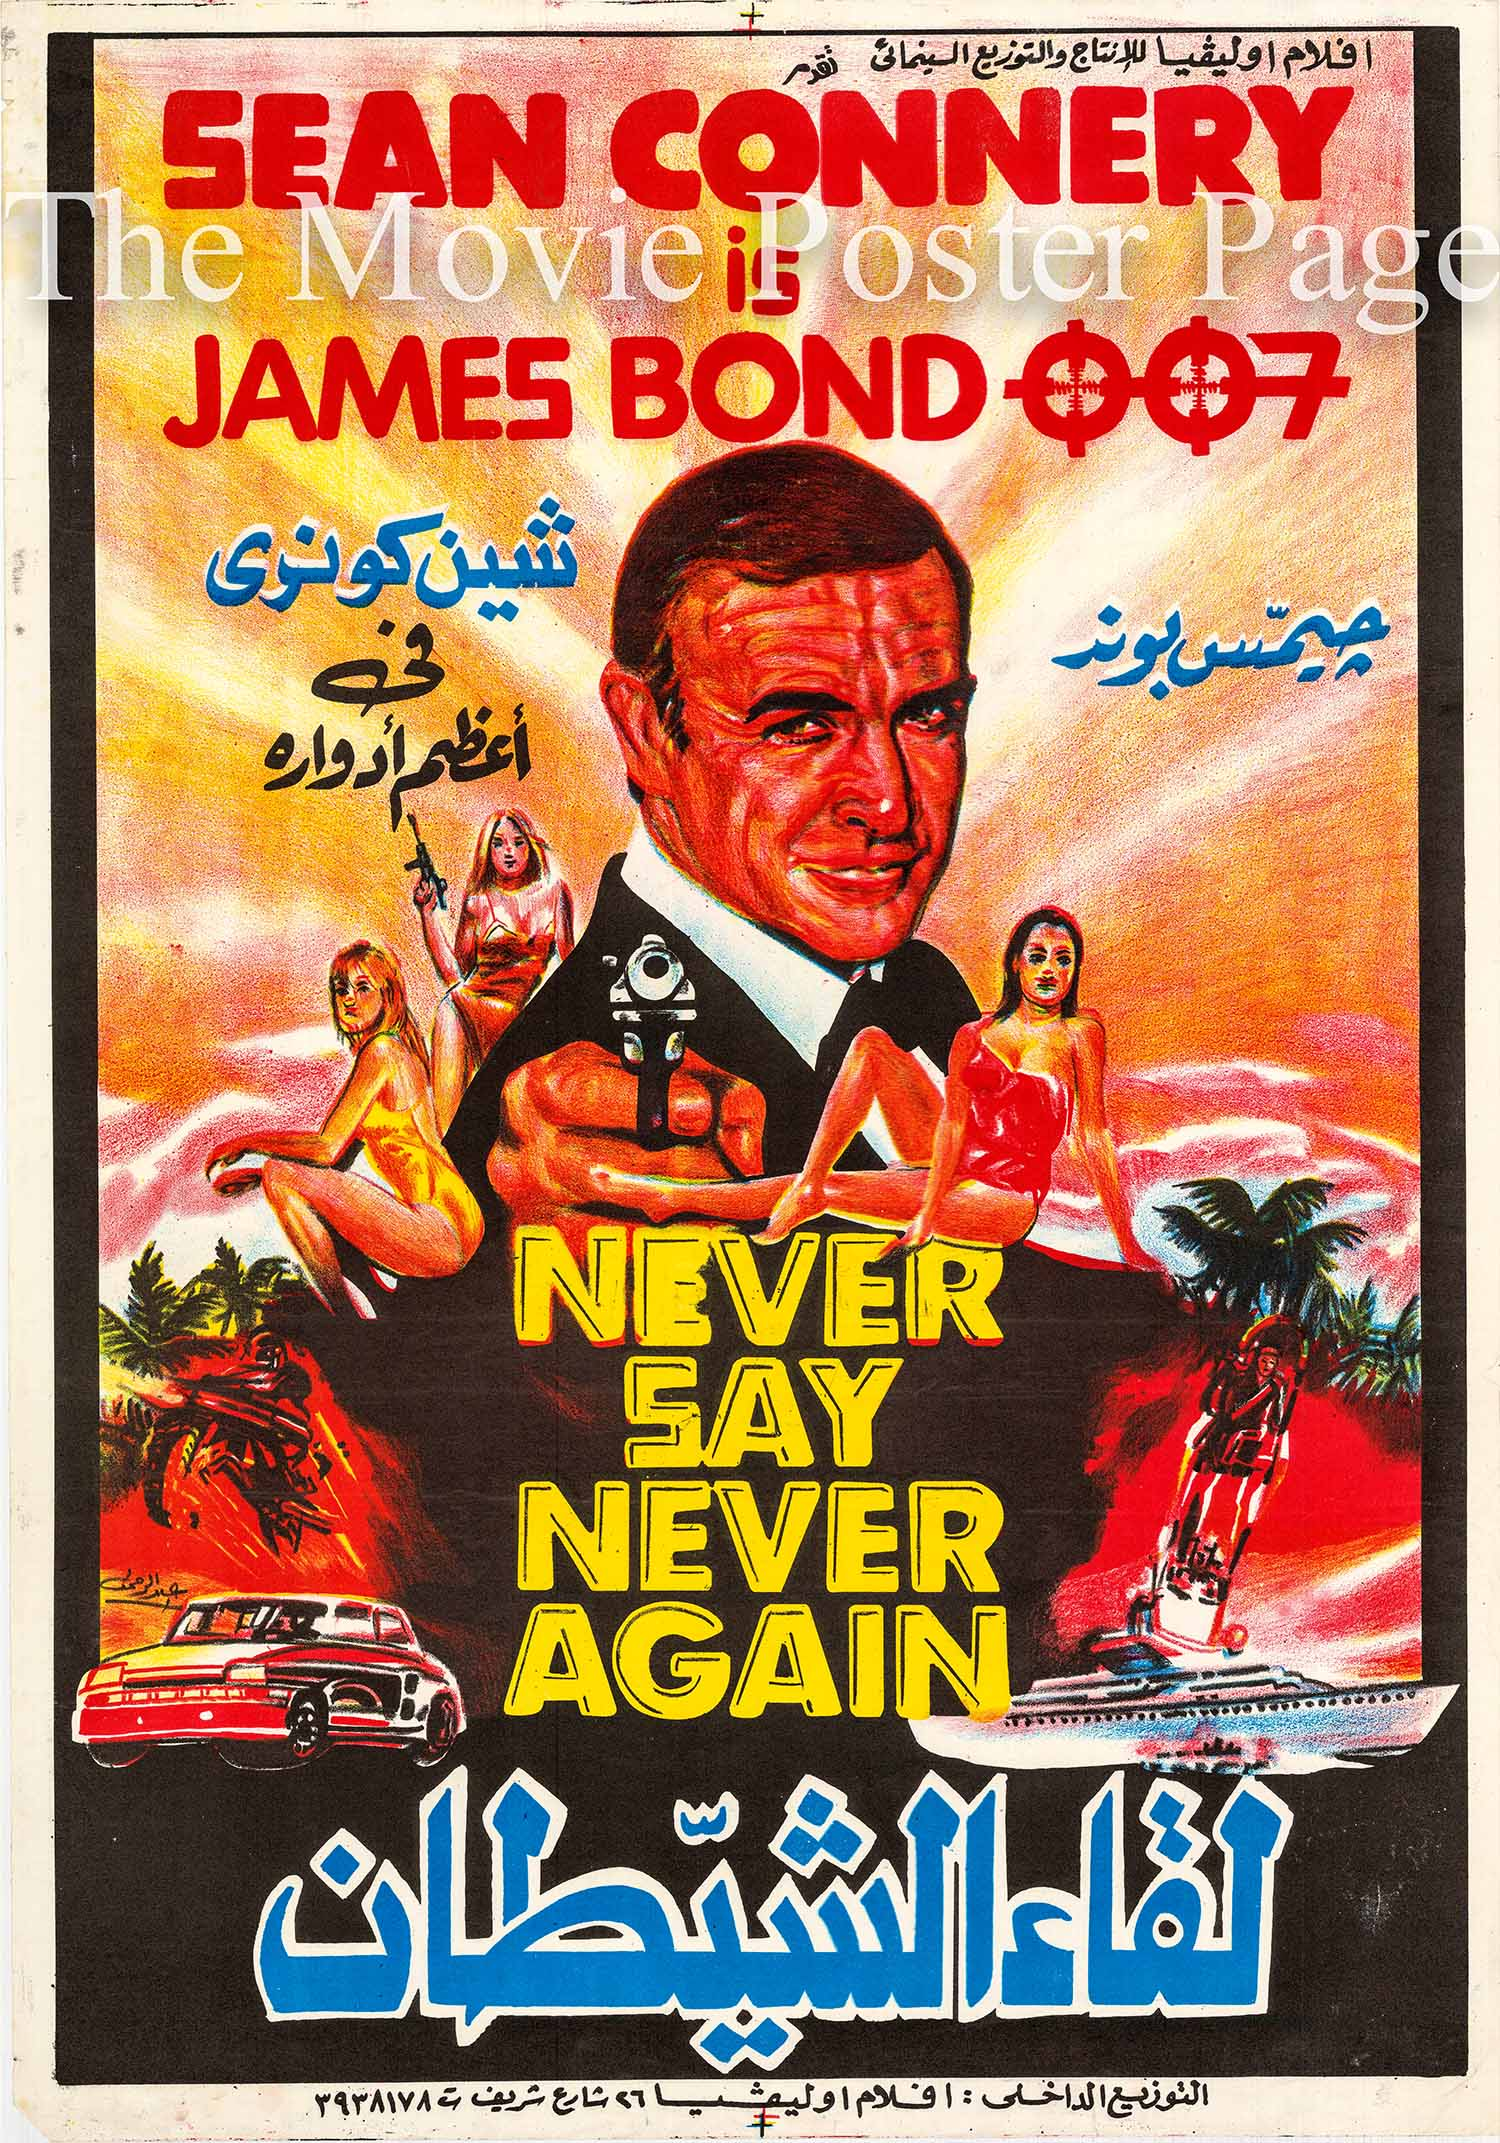 Pictured is an Egyptian one-sheet promotional poster for the 1983 Irvin Kershner film Never Say Never Again starring Sean Connery as James Bond.